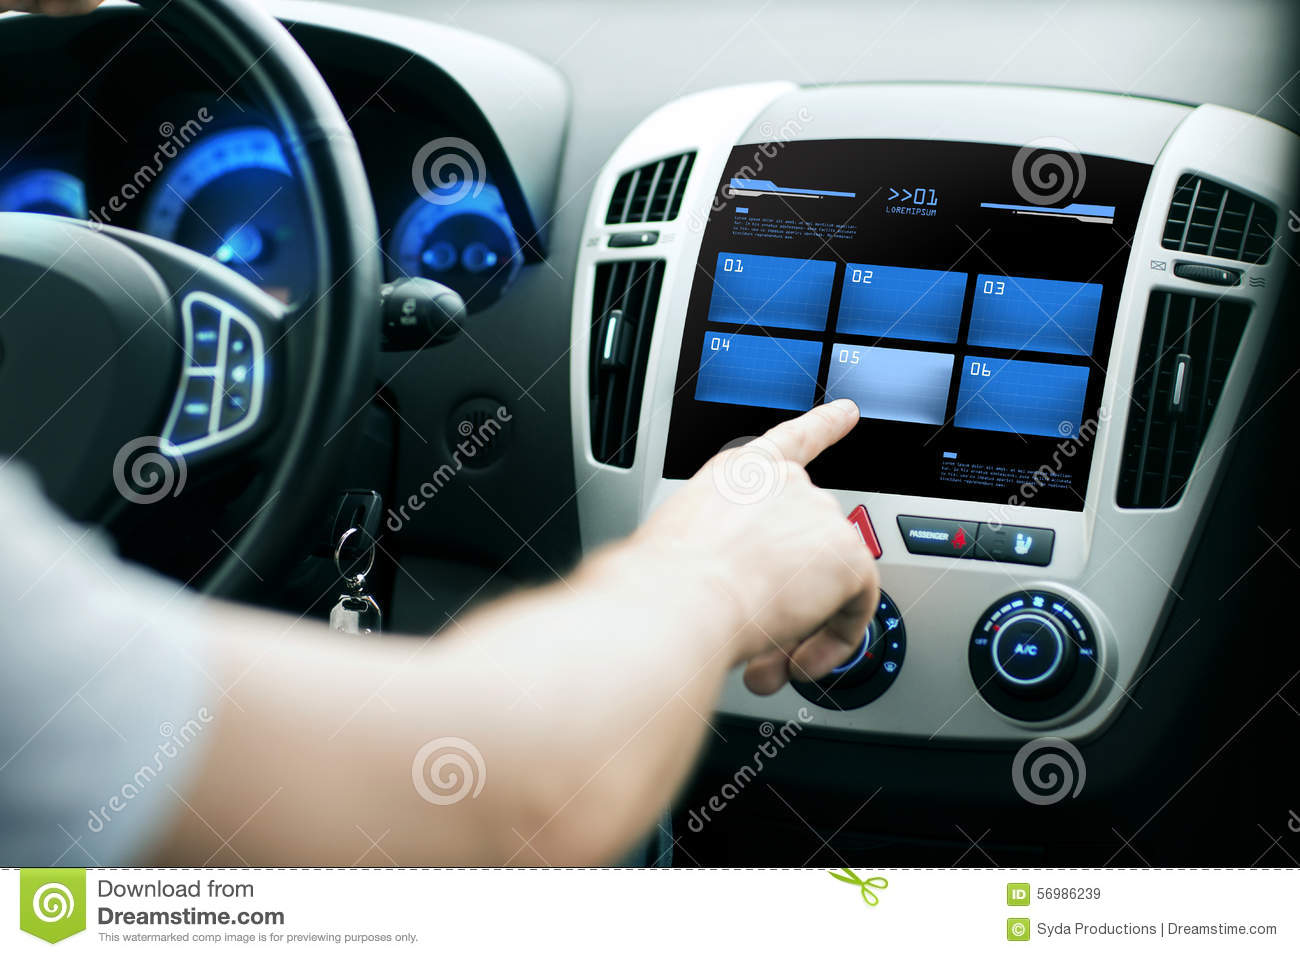 Vehicle Control Panel : Hand pushing button on car control panel screen stock